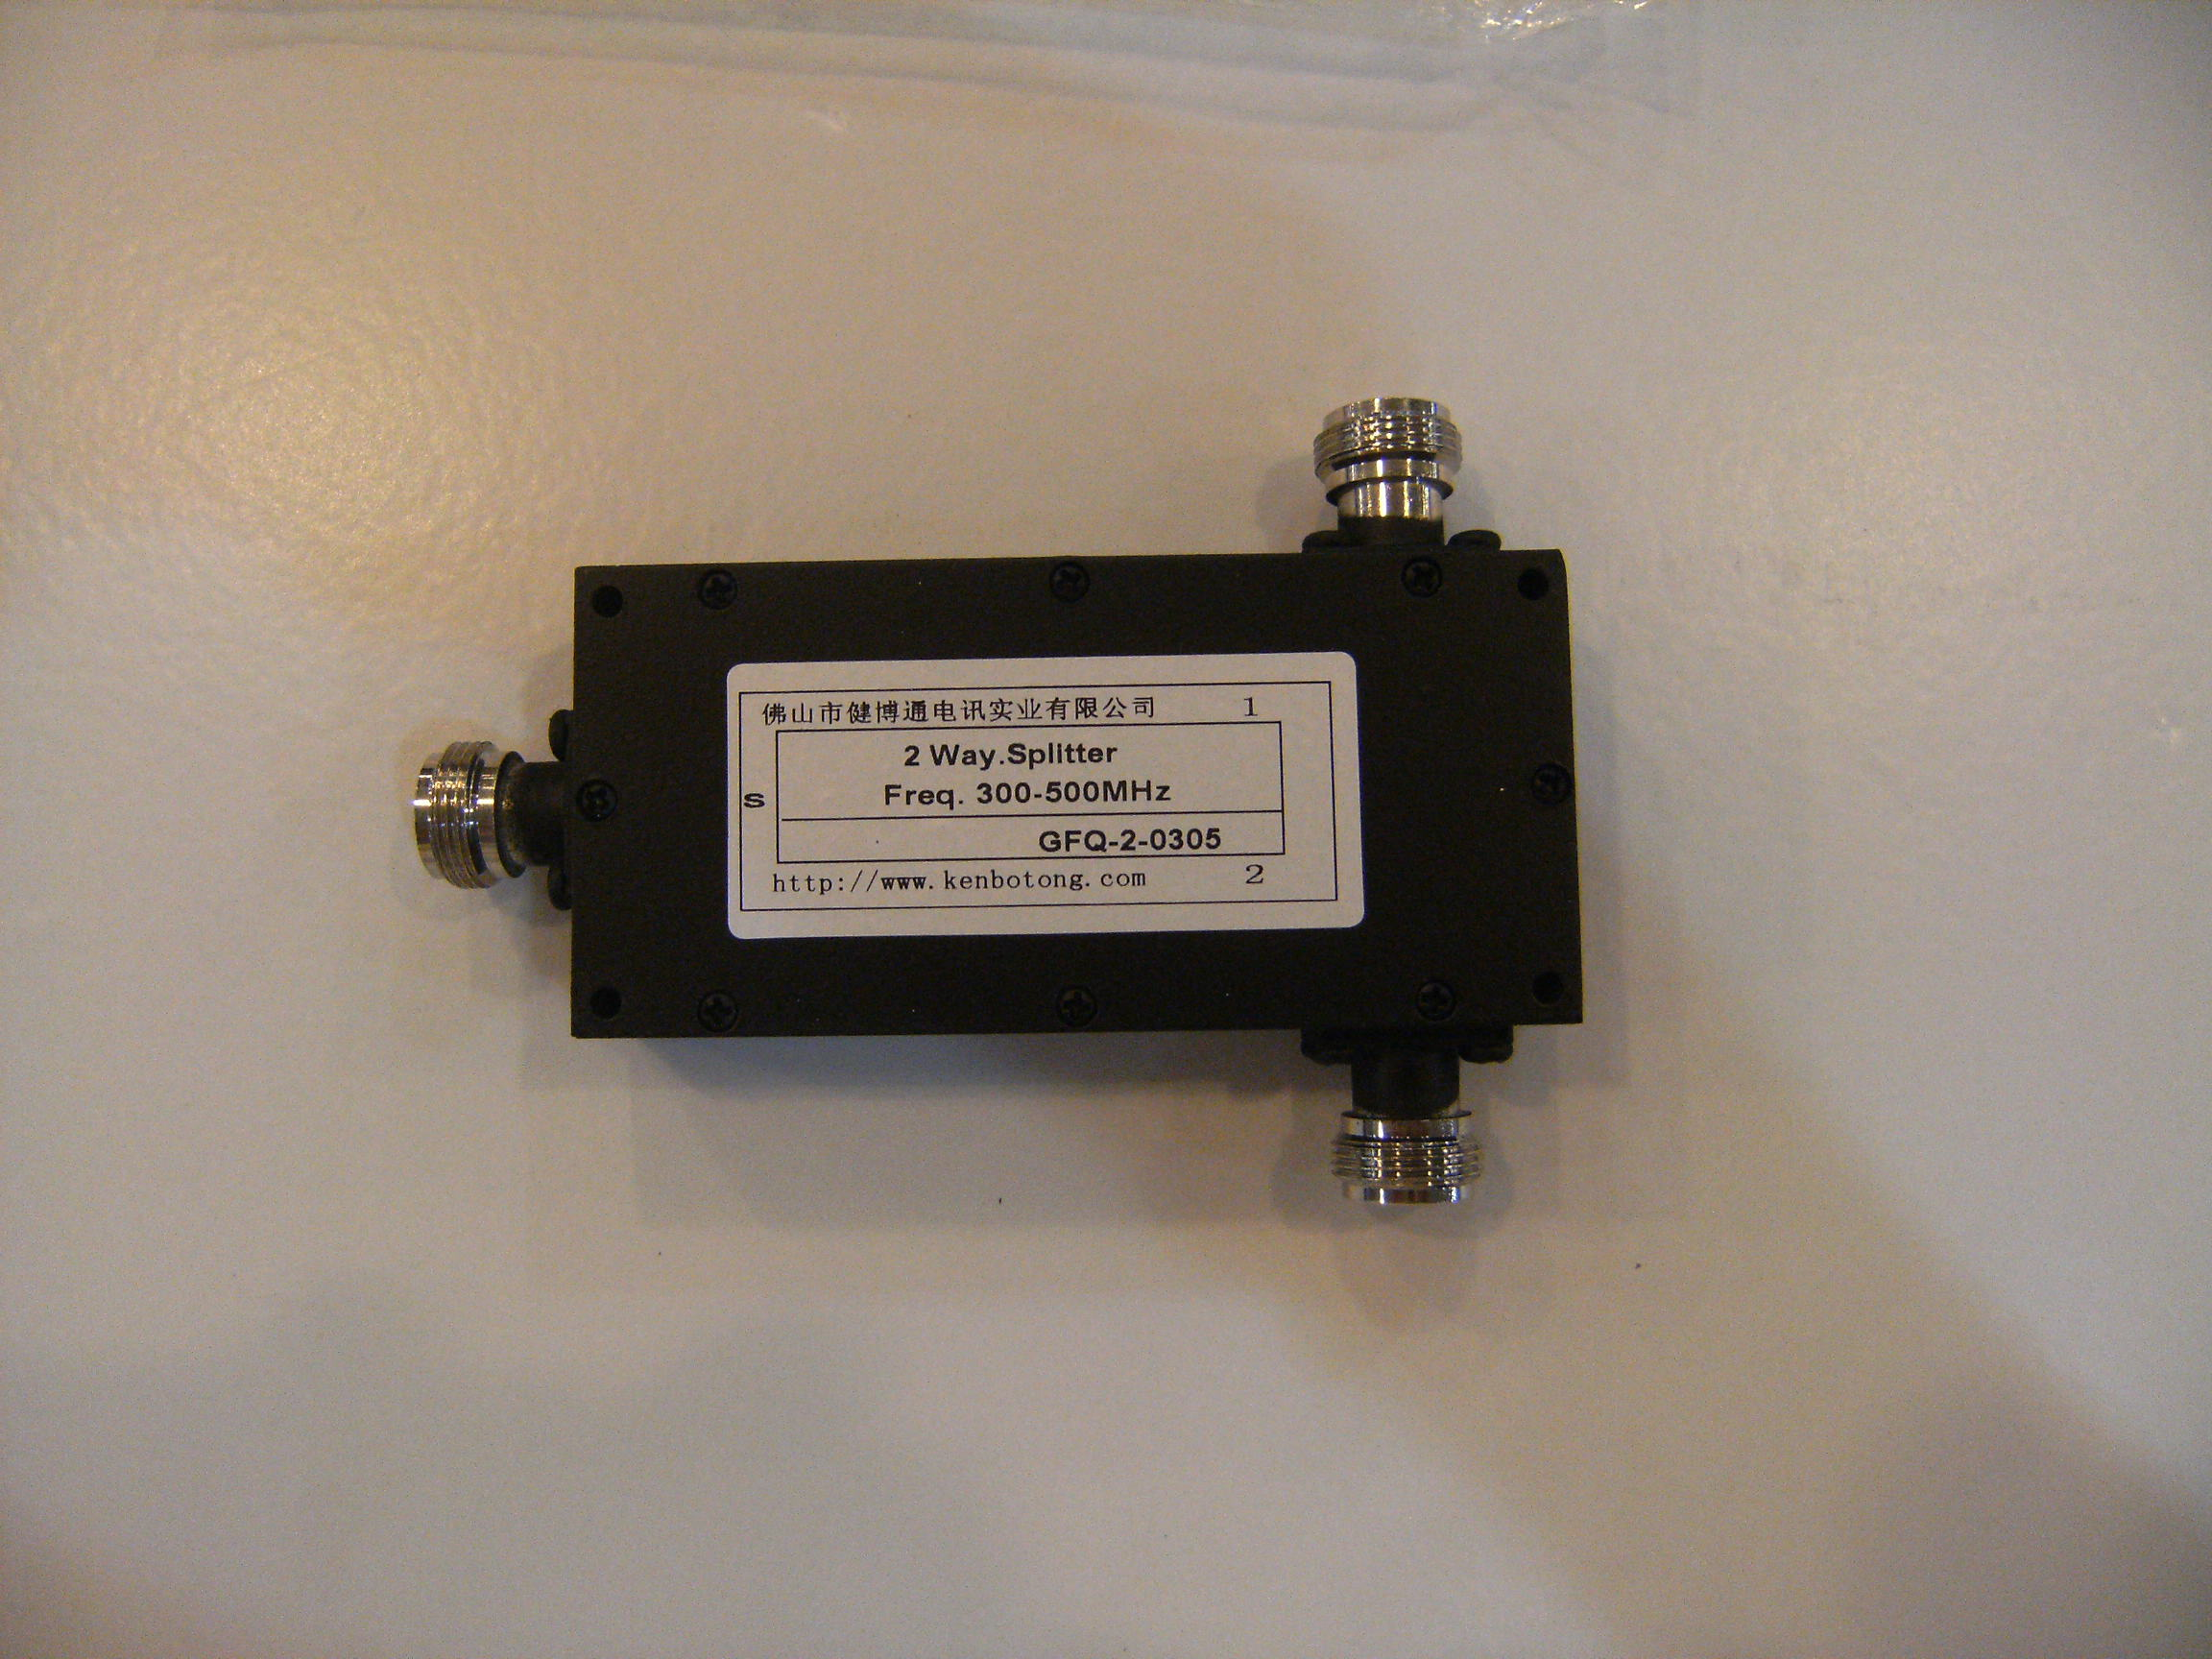 Candid 350-500mhz 400mhz/433mhz/460 Microstrip Two Power Divider Gfq-2-0305